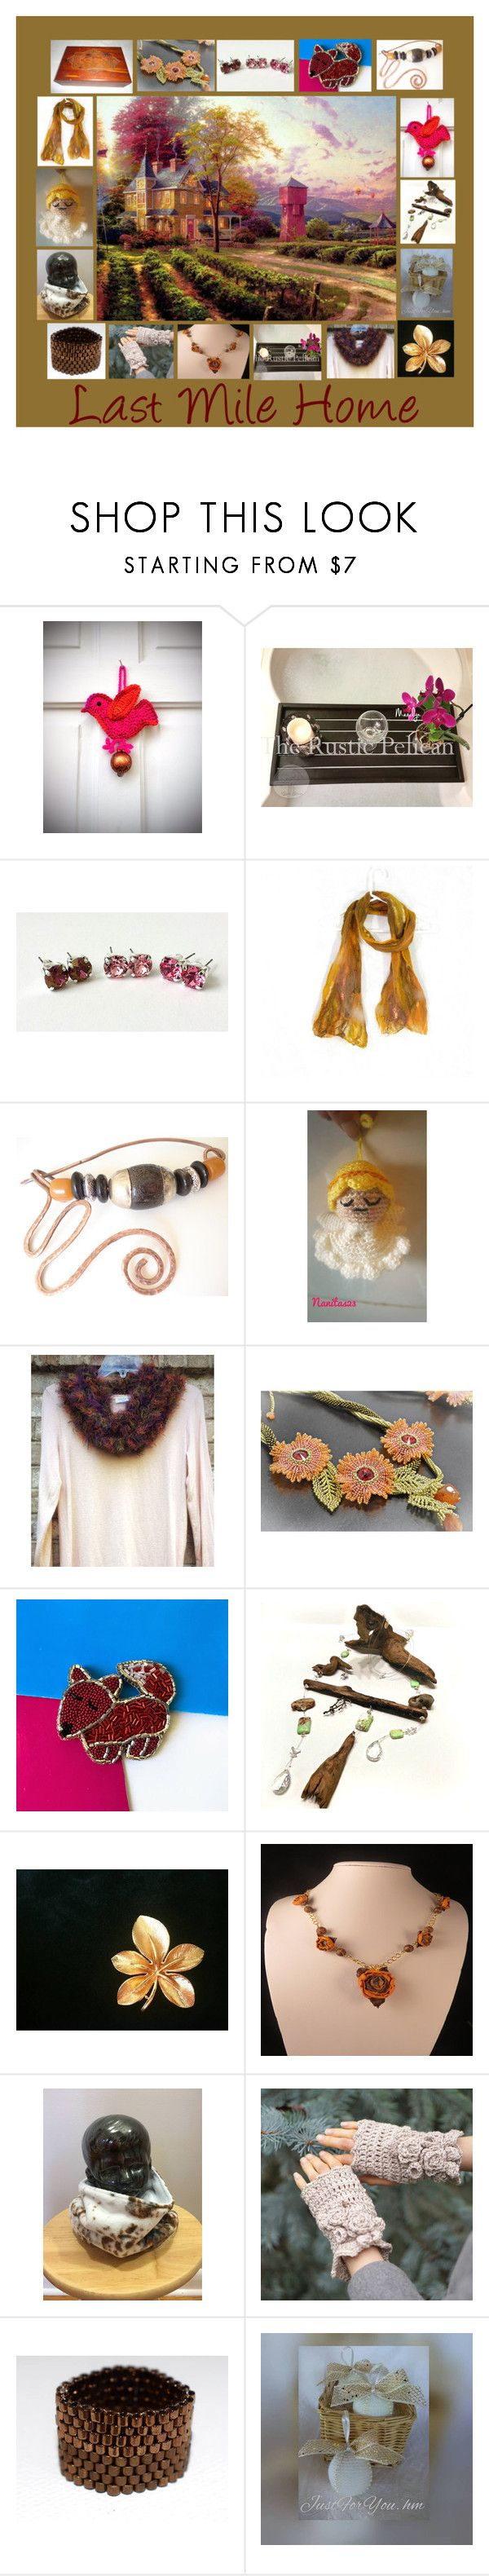 """Last Mile Home: Handmade Country Gift Ideas"" by paulinemcewen on Polyvore featuring rustic, vintage and country"